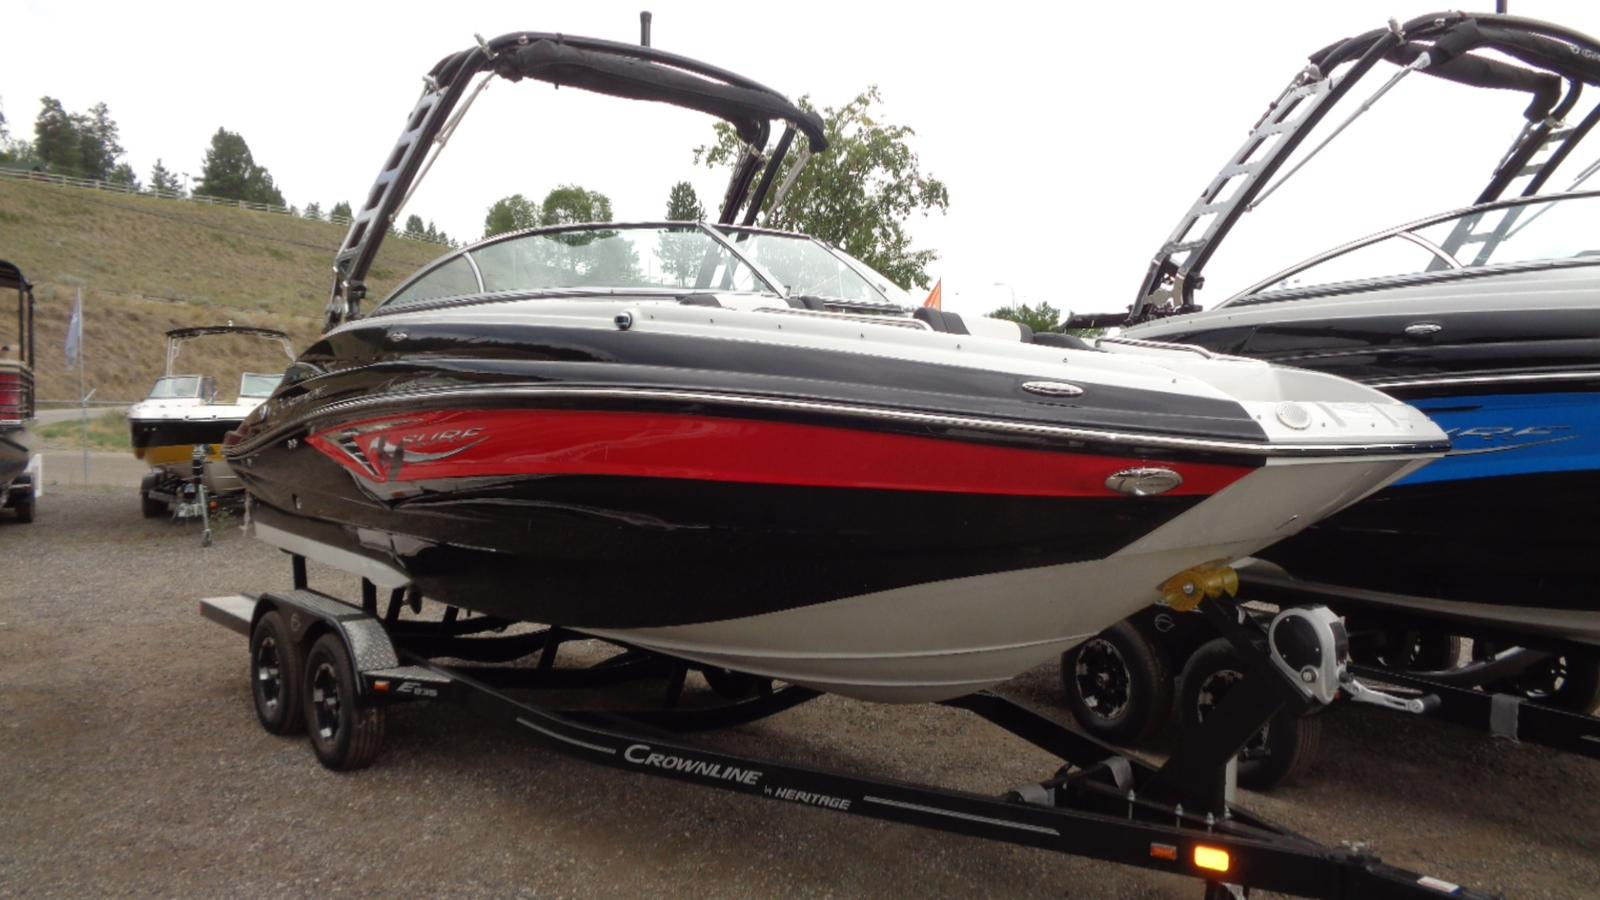 For Sale: 2019 Crownline E 235 Surf 24ft<br/>Dockside Marine Centre, LTD.